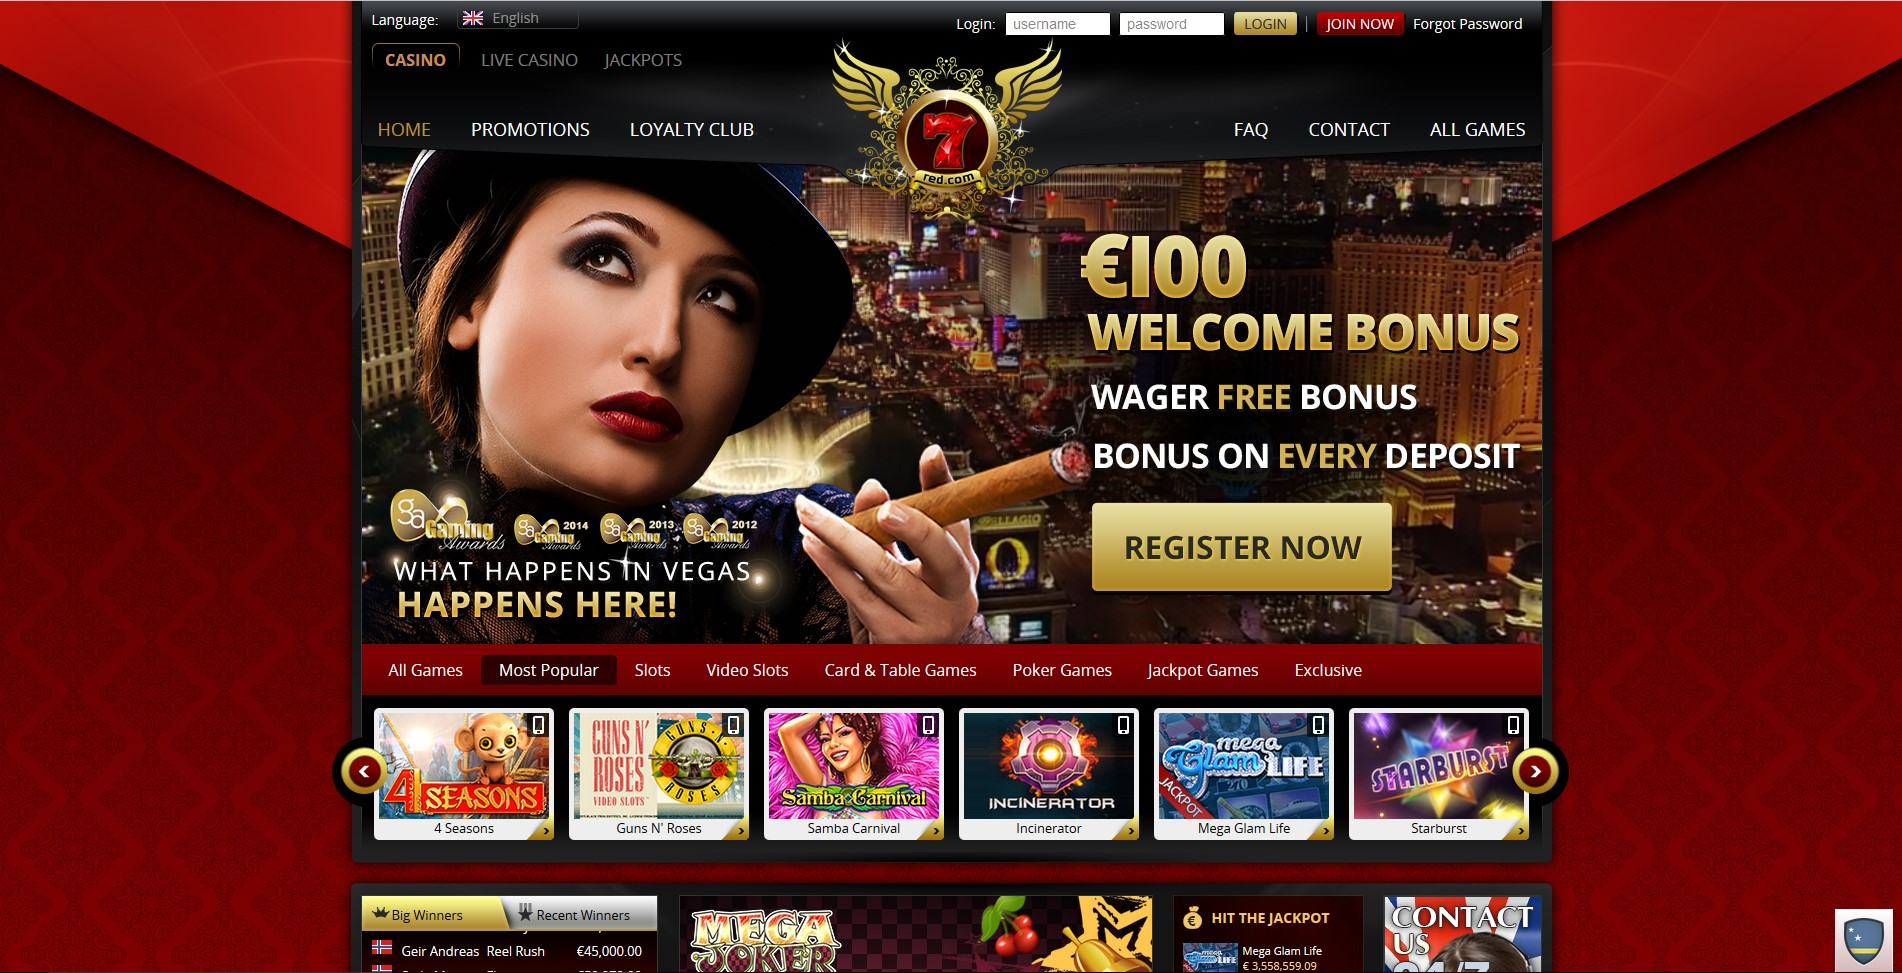 Mail Casino Review – The Expert Ratings and User Reviews